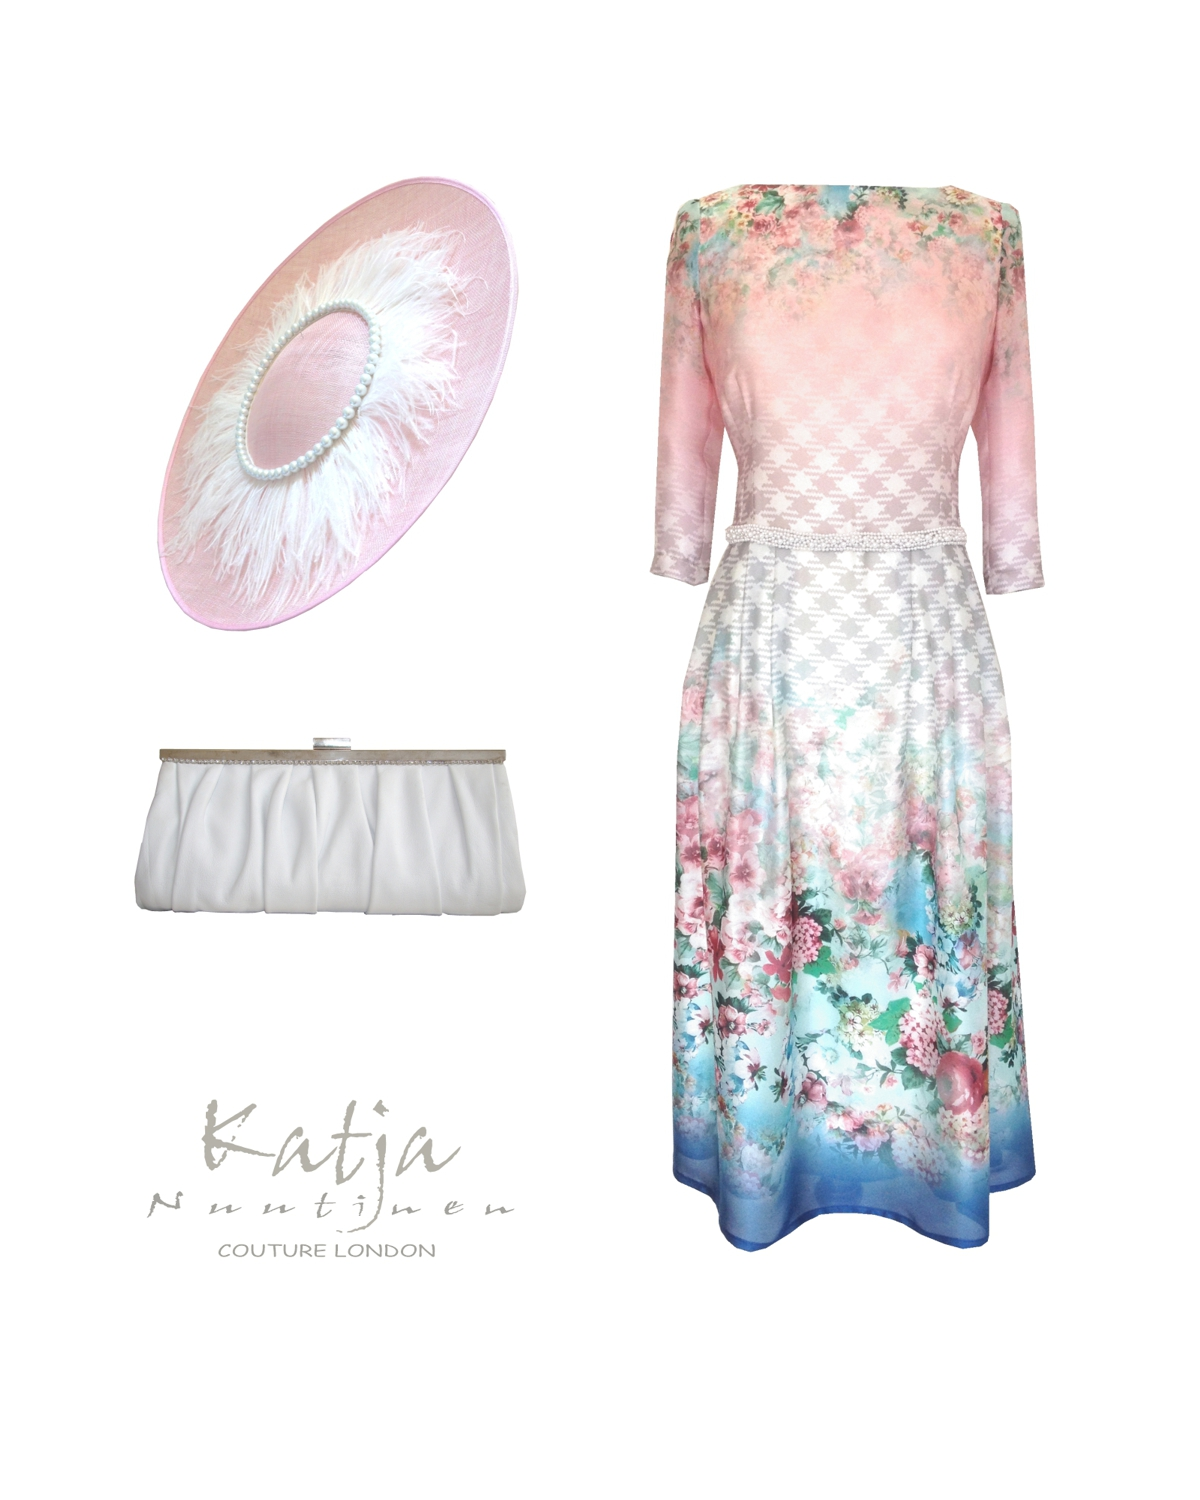 Couture outfit - Flower pattern silk dress, pink disc hat and white leather clutch bag